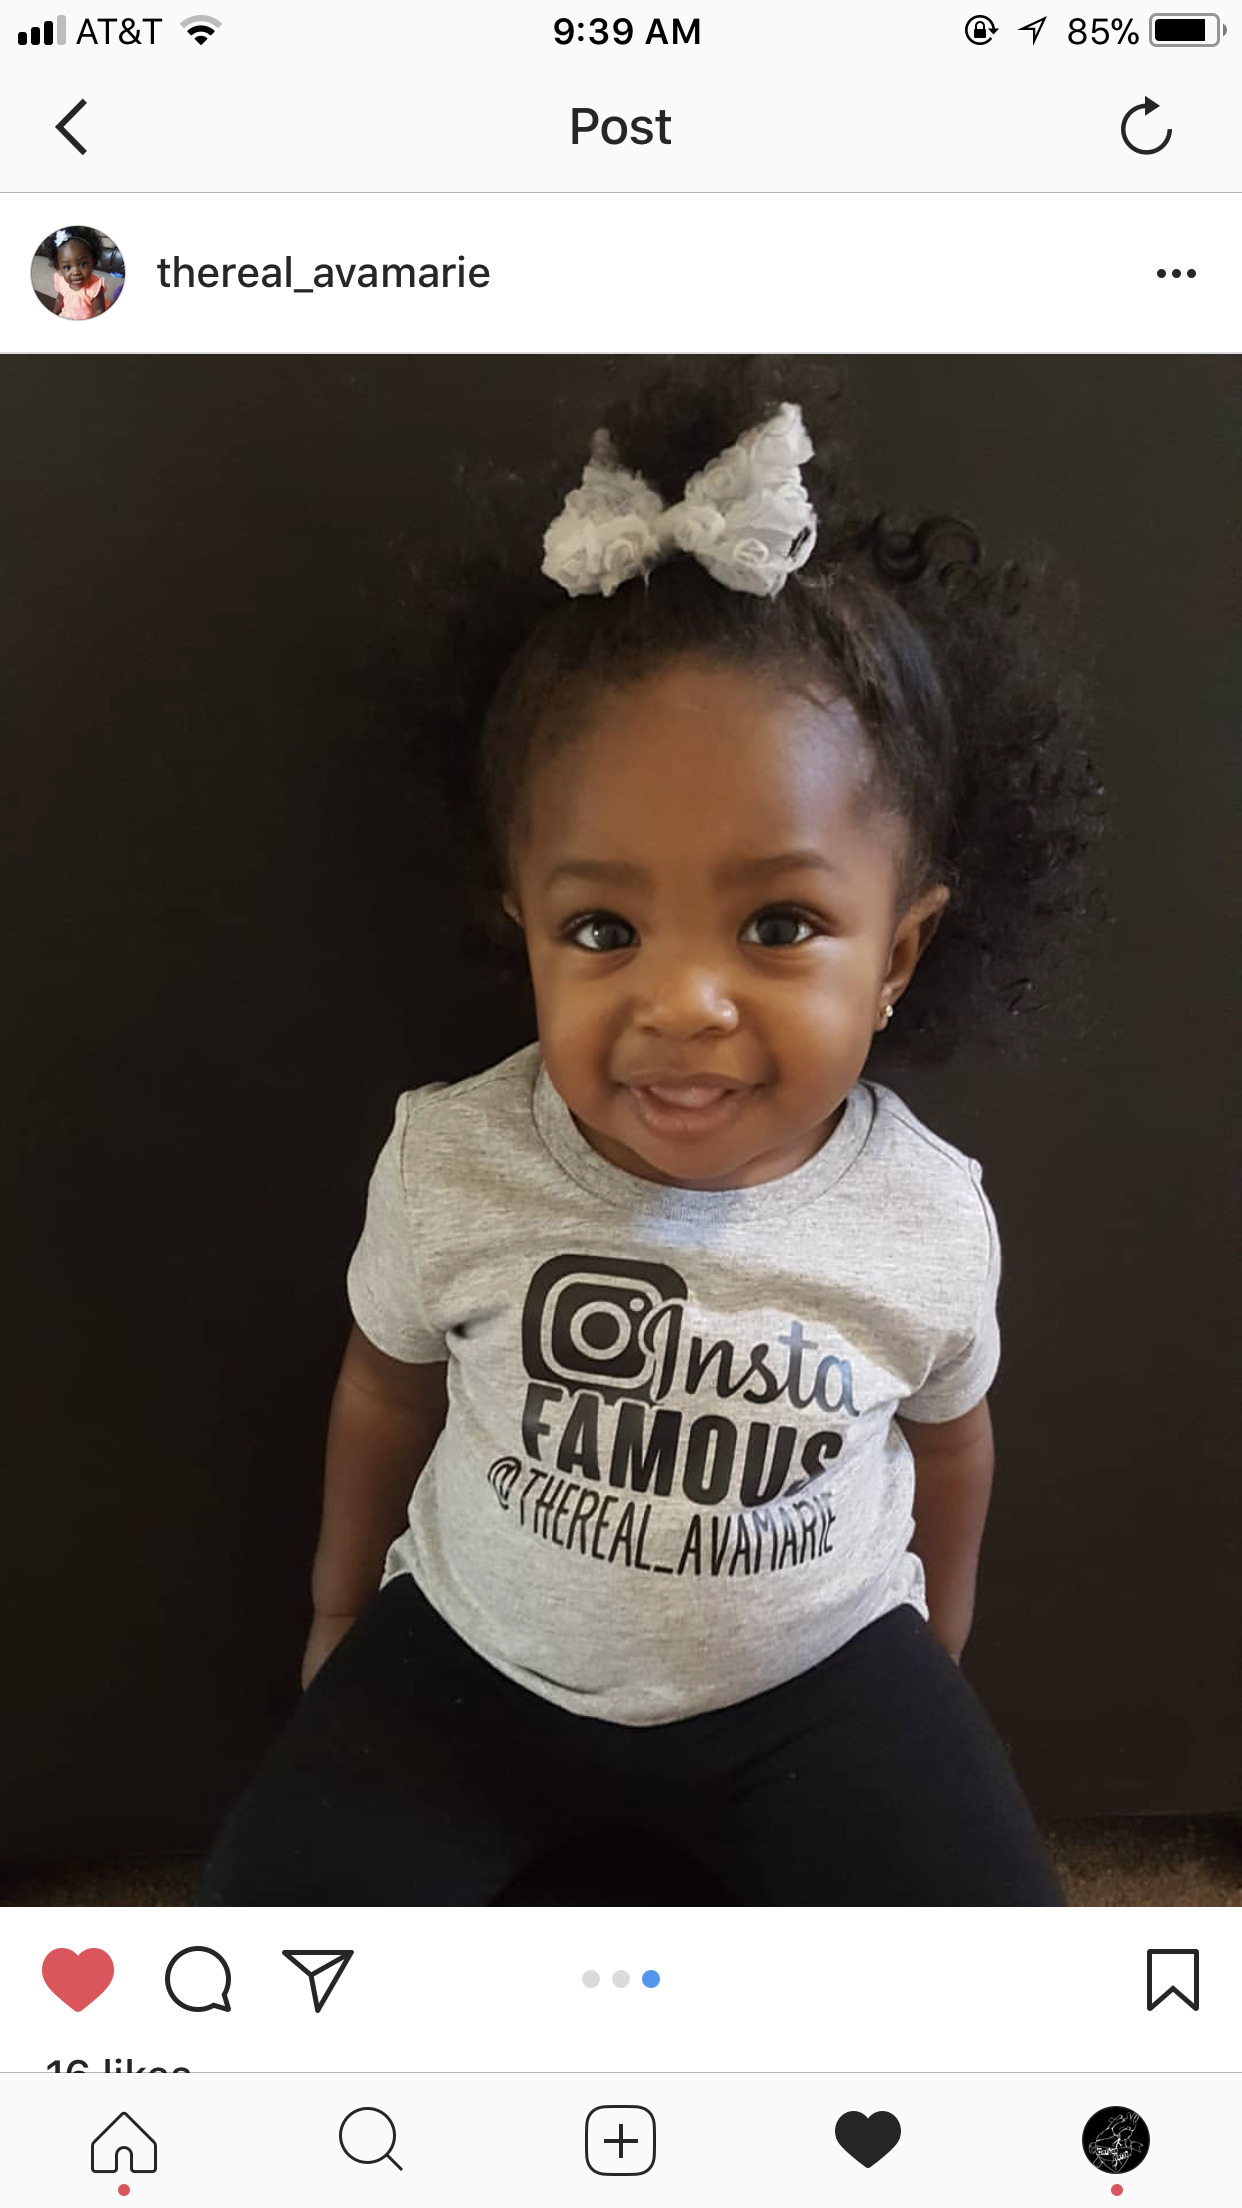 Insta famous instagram ig brand rep instagram handle baby fashion kids tee